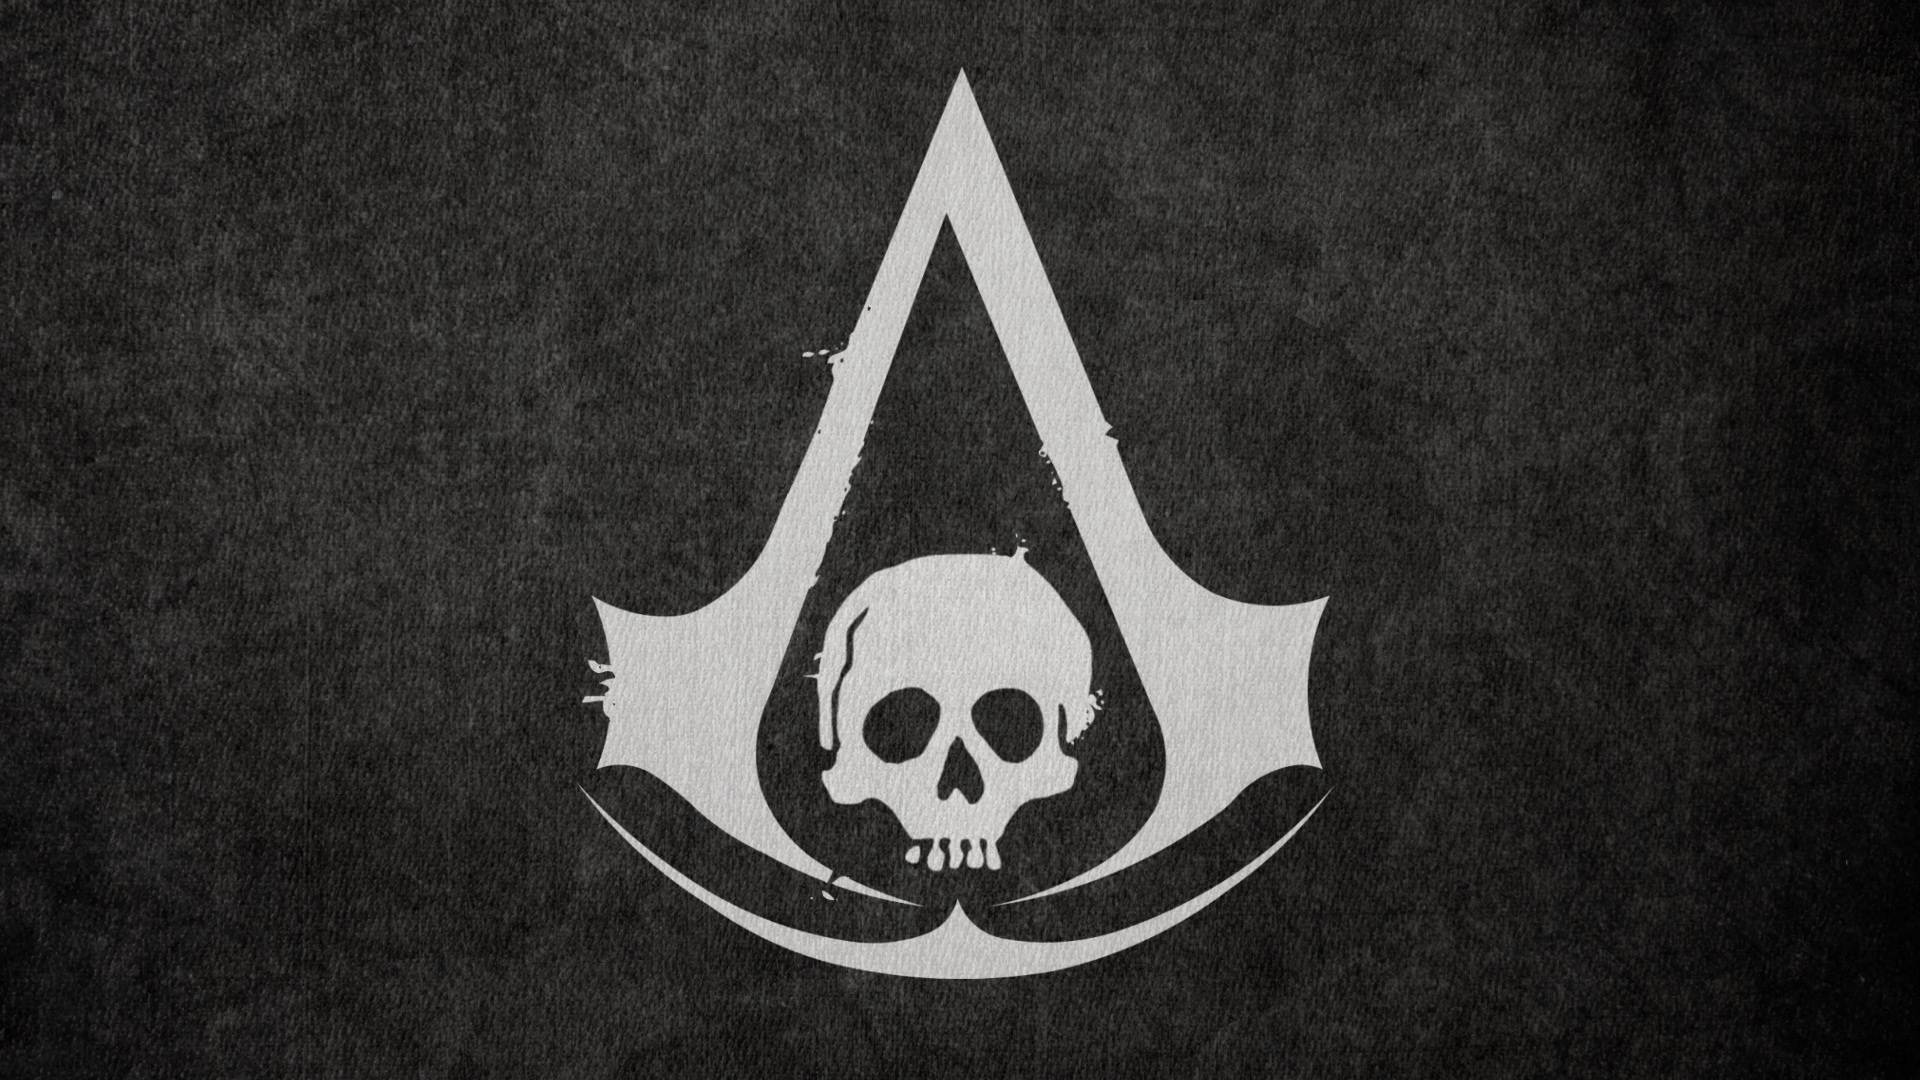 Download Assassins Creed Logo Wallpaper Background pictures in high 1920x1080